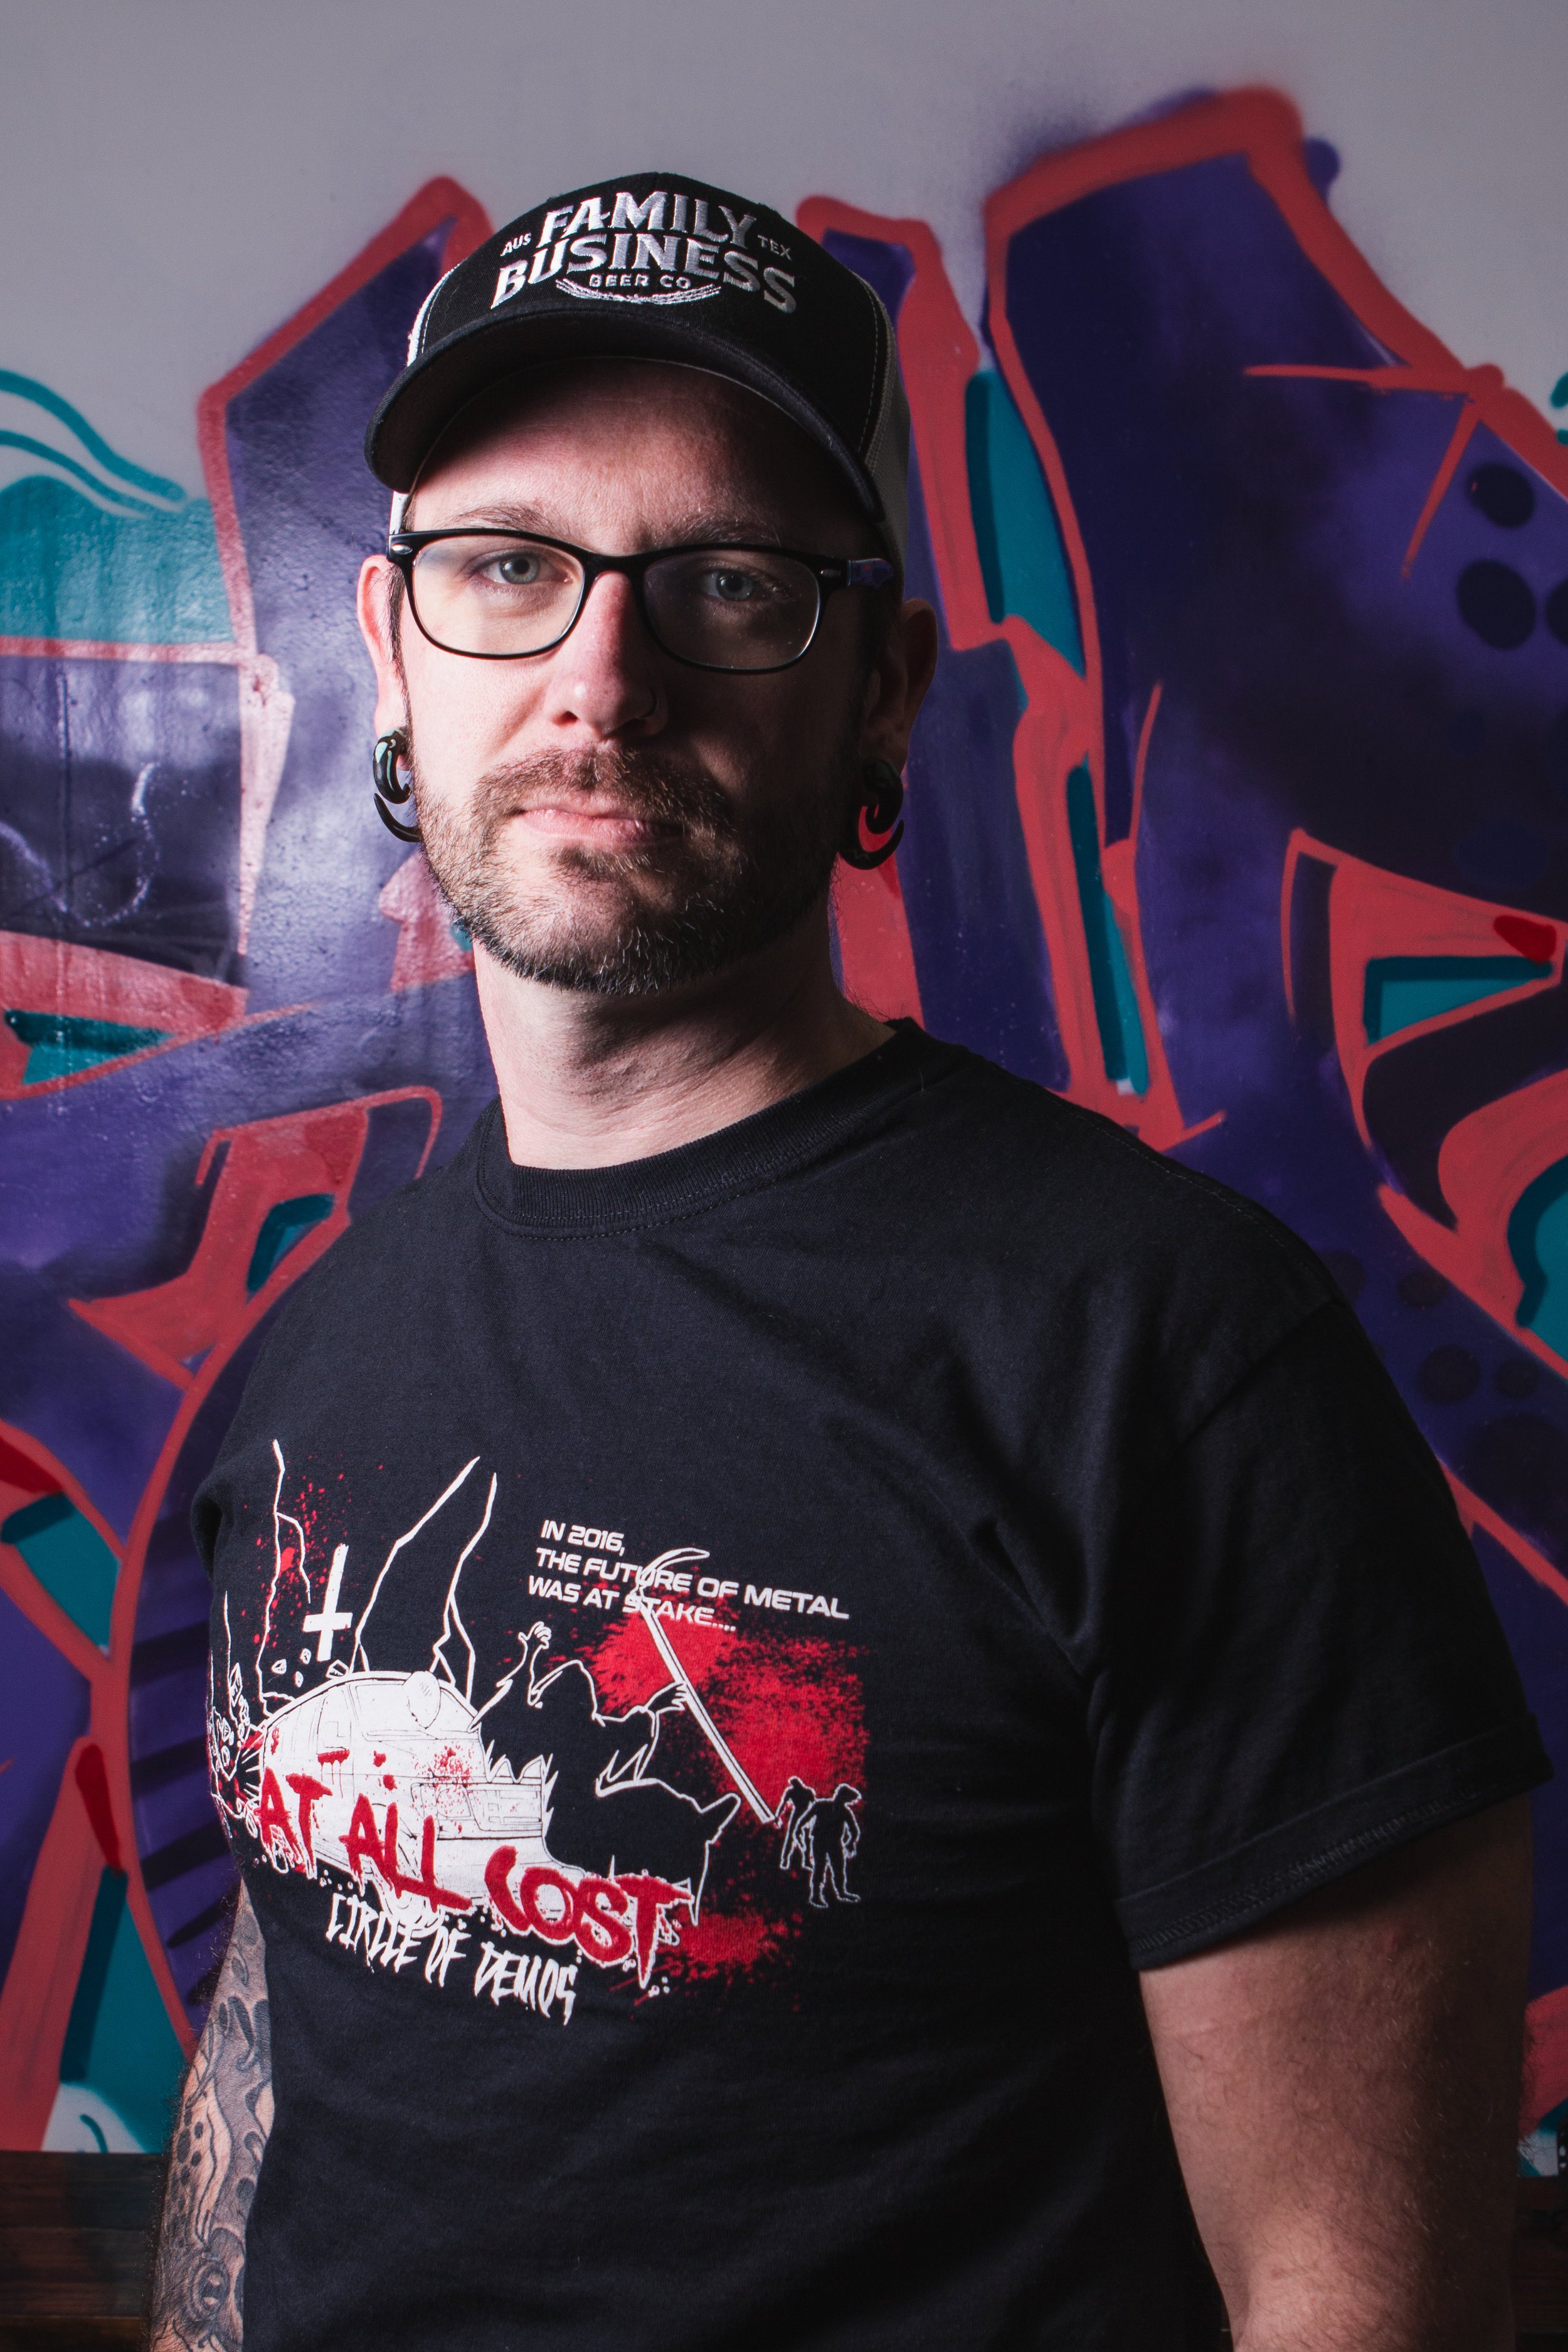 Spang - Hometown: PhiladelphiaFirst moved to Austin: 2004First Beer: Icehouse. Didn't drink again till I moved to Austin.First Coffee Experience: Sipping coffee for hours at the OG bouldin creek, hanging and chatting with the older Austin hippies.What kind of cult would you like to start? Cult of RammsteinYou're a mad scientist, what scientific experiment would you run if money and ethics weren't an issue? I would build and army of alchemically married chimera to do my bidding.What two totally normal things become really weird if you do them back to back? Riding a motorcycle. Listening to vitas.